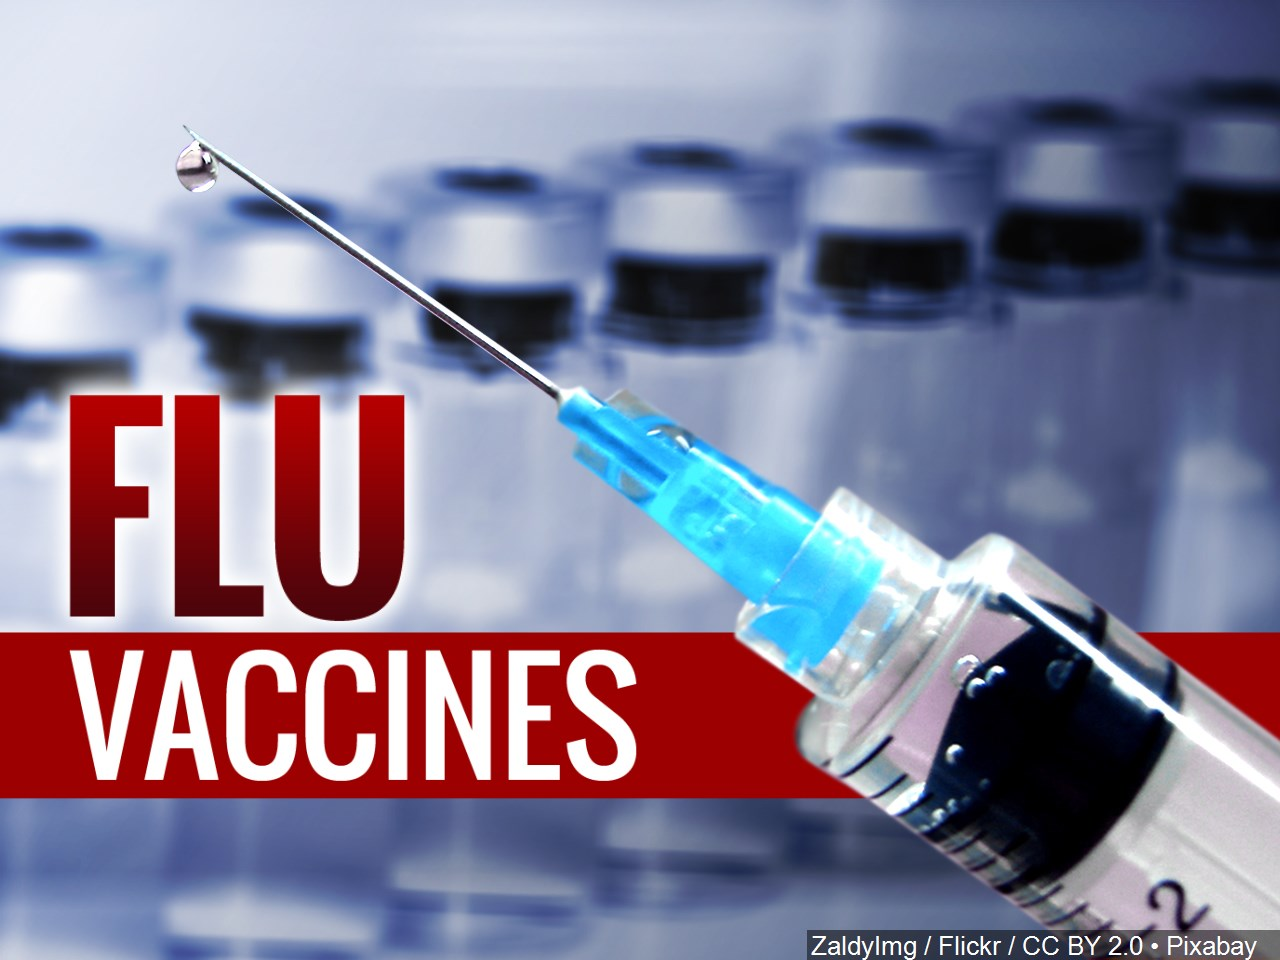 The flu season is here and medical providers encourage the public to get a flu shot as a preventative measure. (Photo: Courtesy MGN)